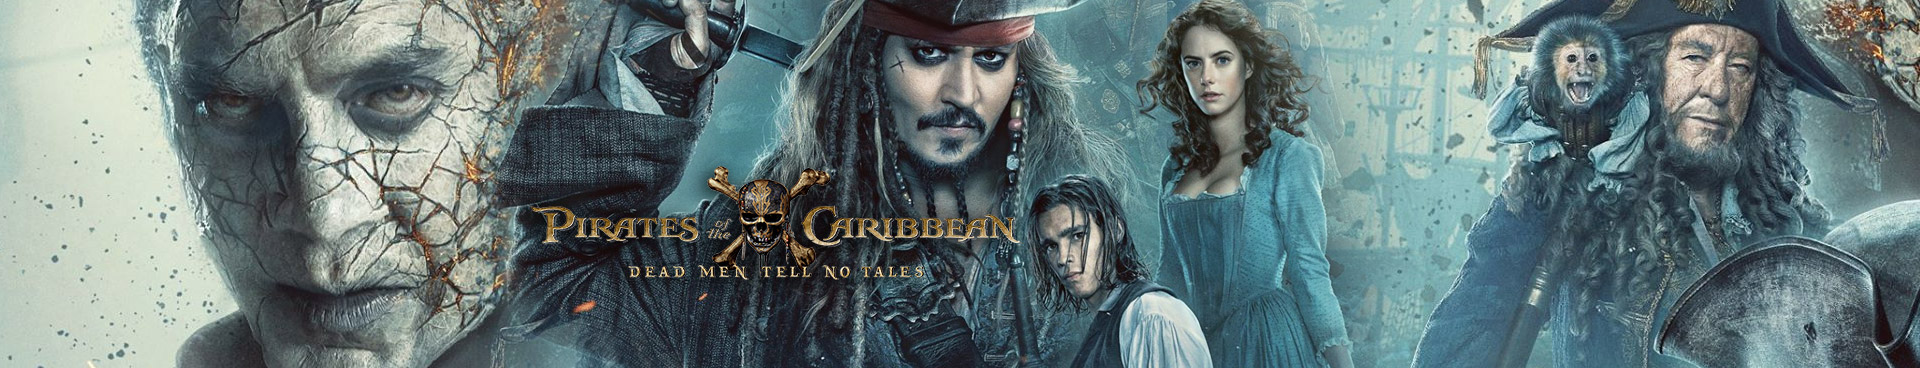 PIRATES OF THE CARIBBEAN : DEAD MAN TELLS NO TALES (3D IMAX )